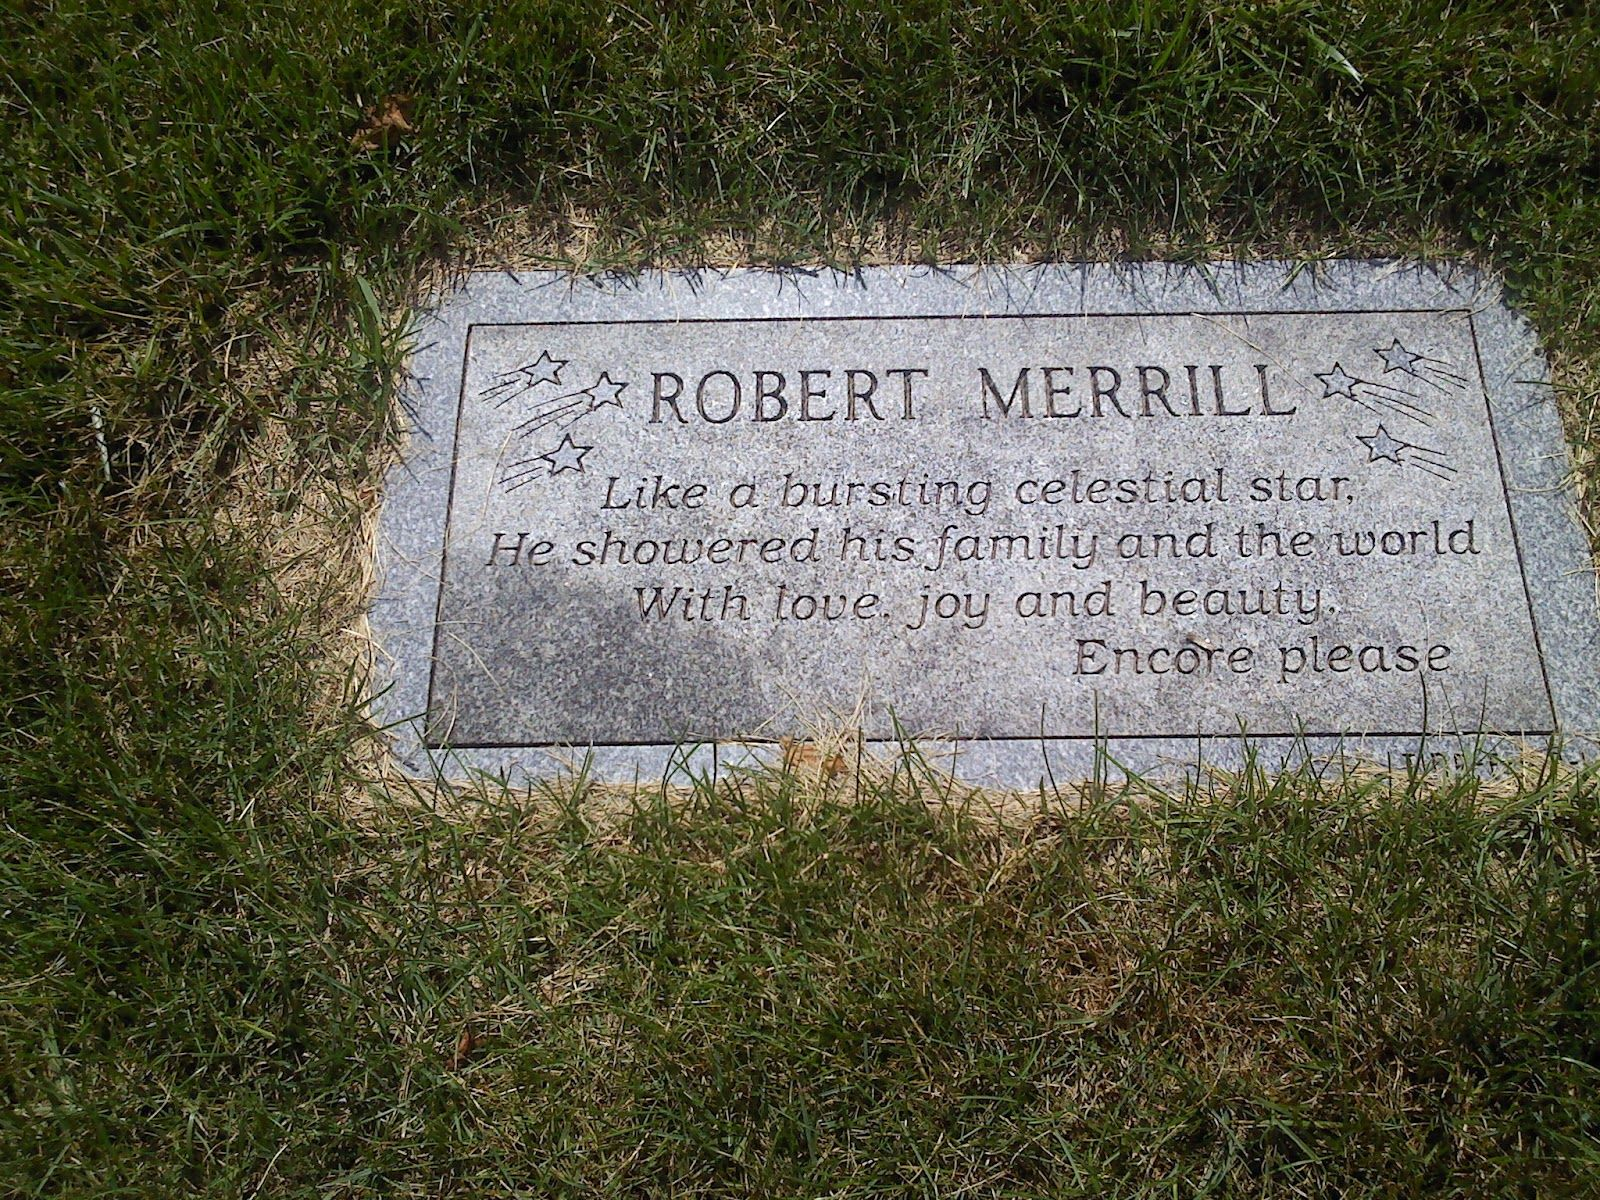 Robert Merrill plaque